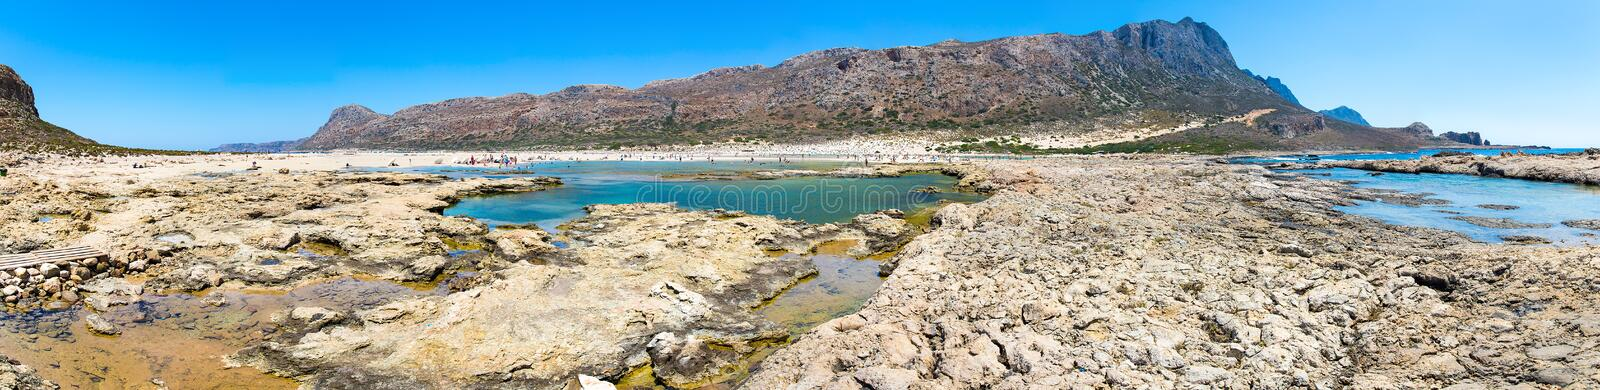 Download Panorama Of Balos Beach. View From Gramvousa Island, Crete In Greece.Magical Turquoise Waters, Lagoons, Beaches Stock Photo - Image: 40043372